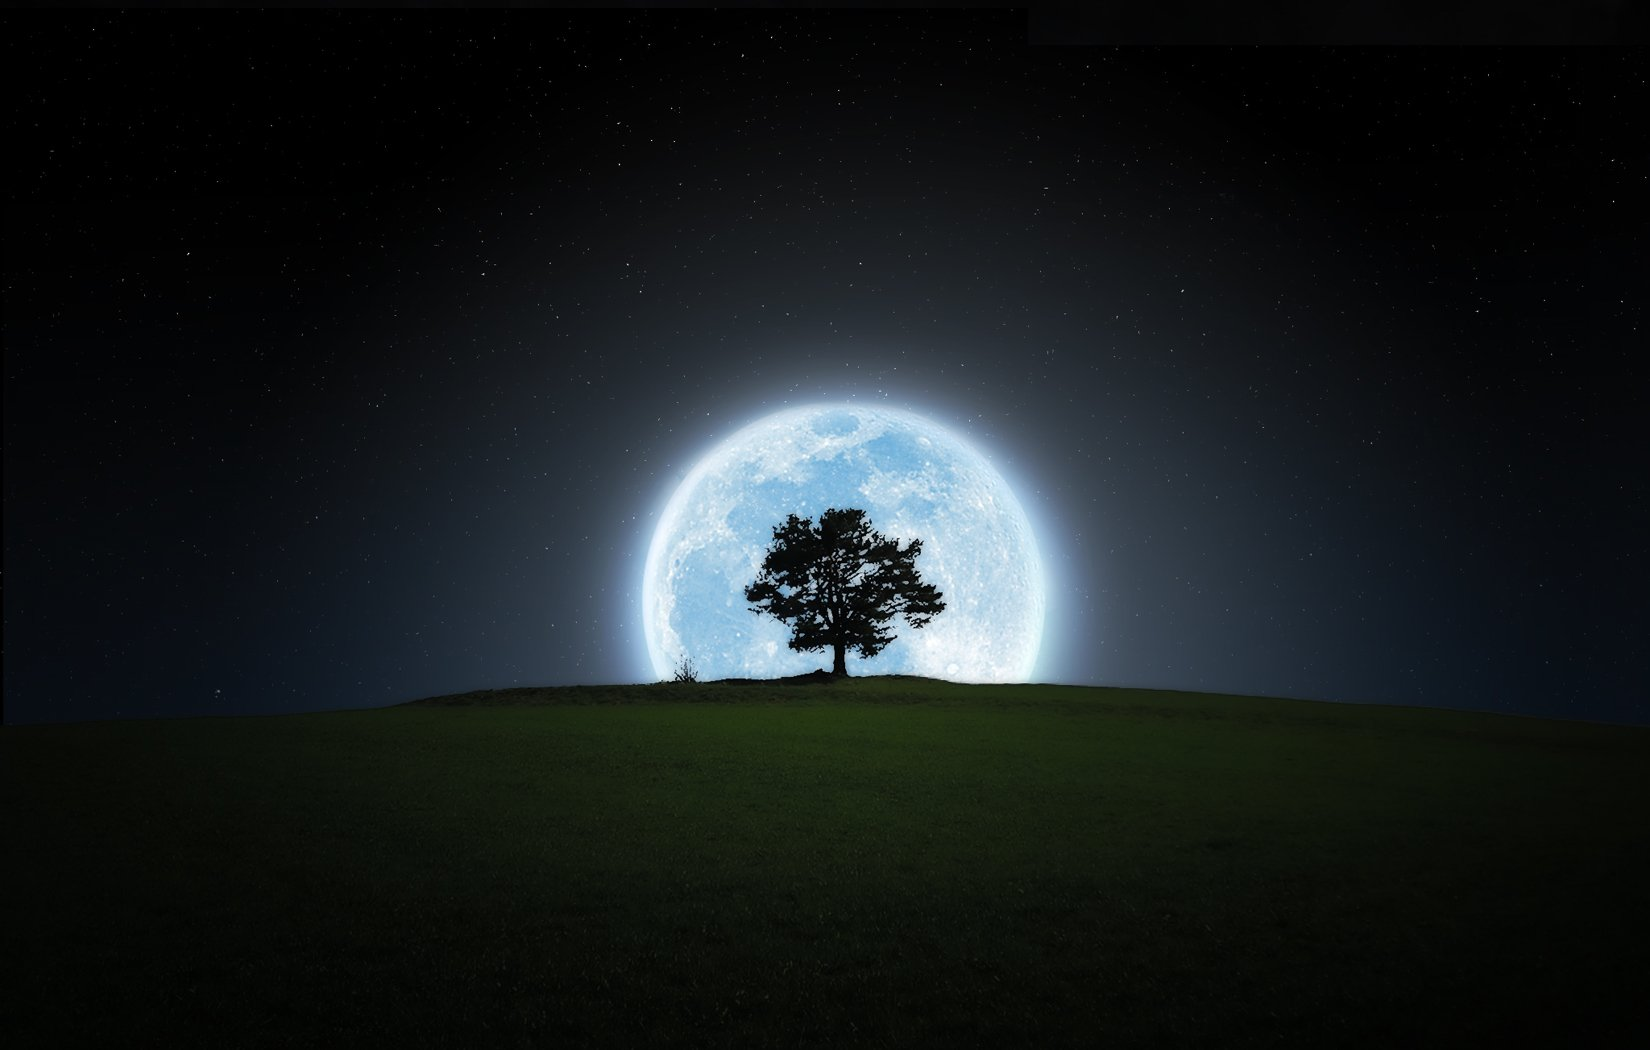 287 moon hd wallpapers | background images - wallpaper abyss